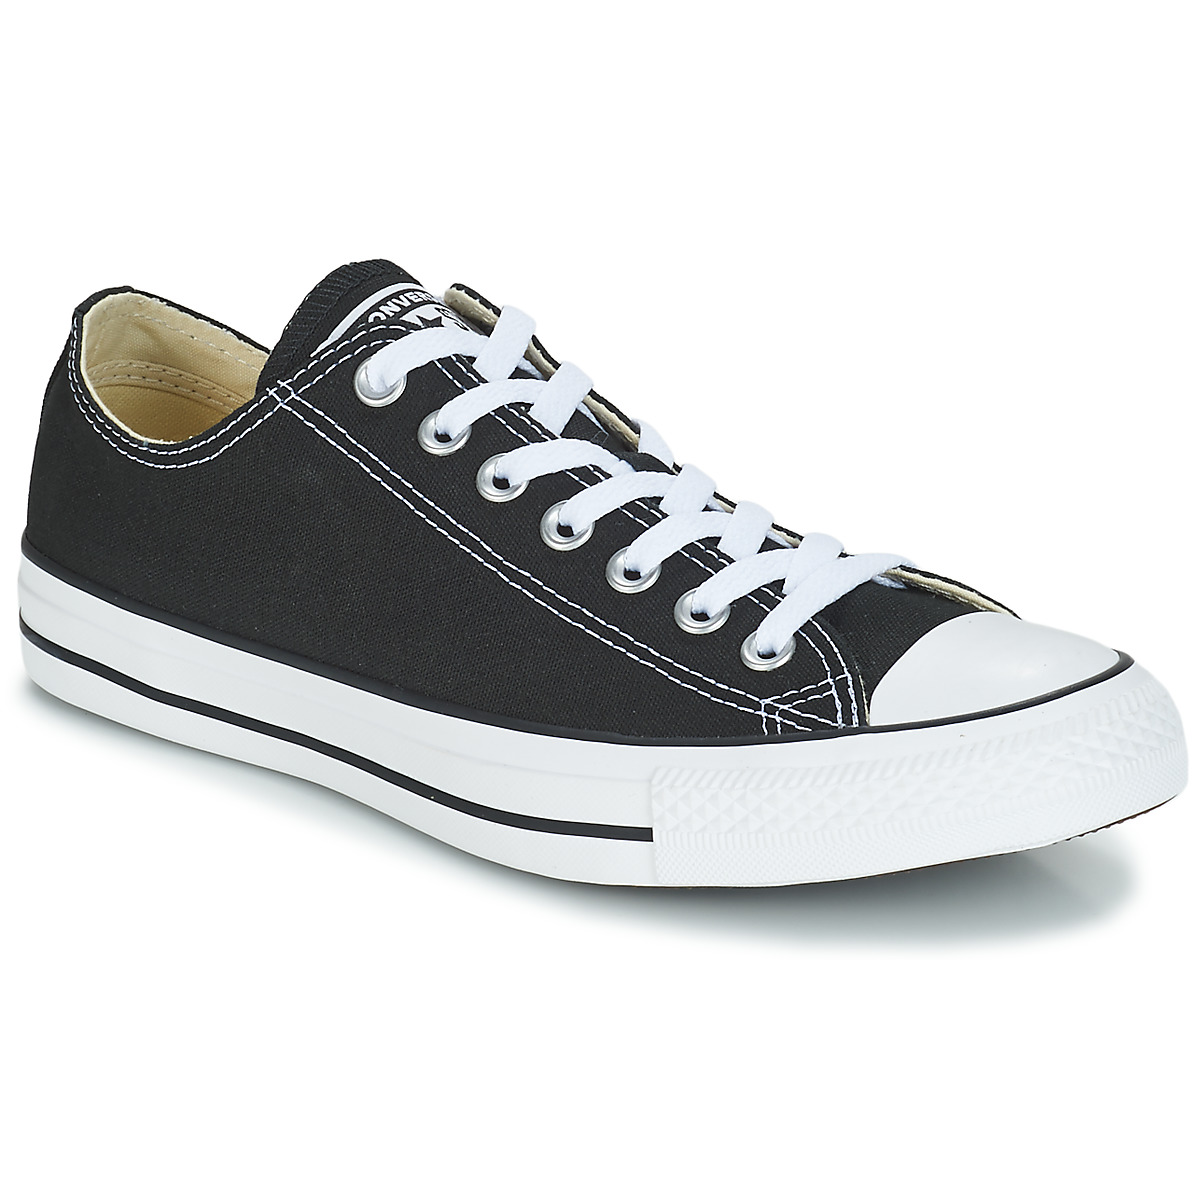 Converse CHUCK TAYLOR ALL STAR CORE OX Black